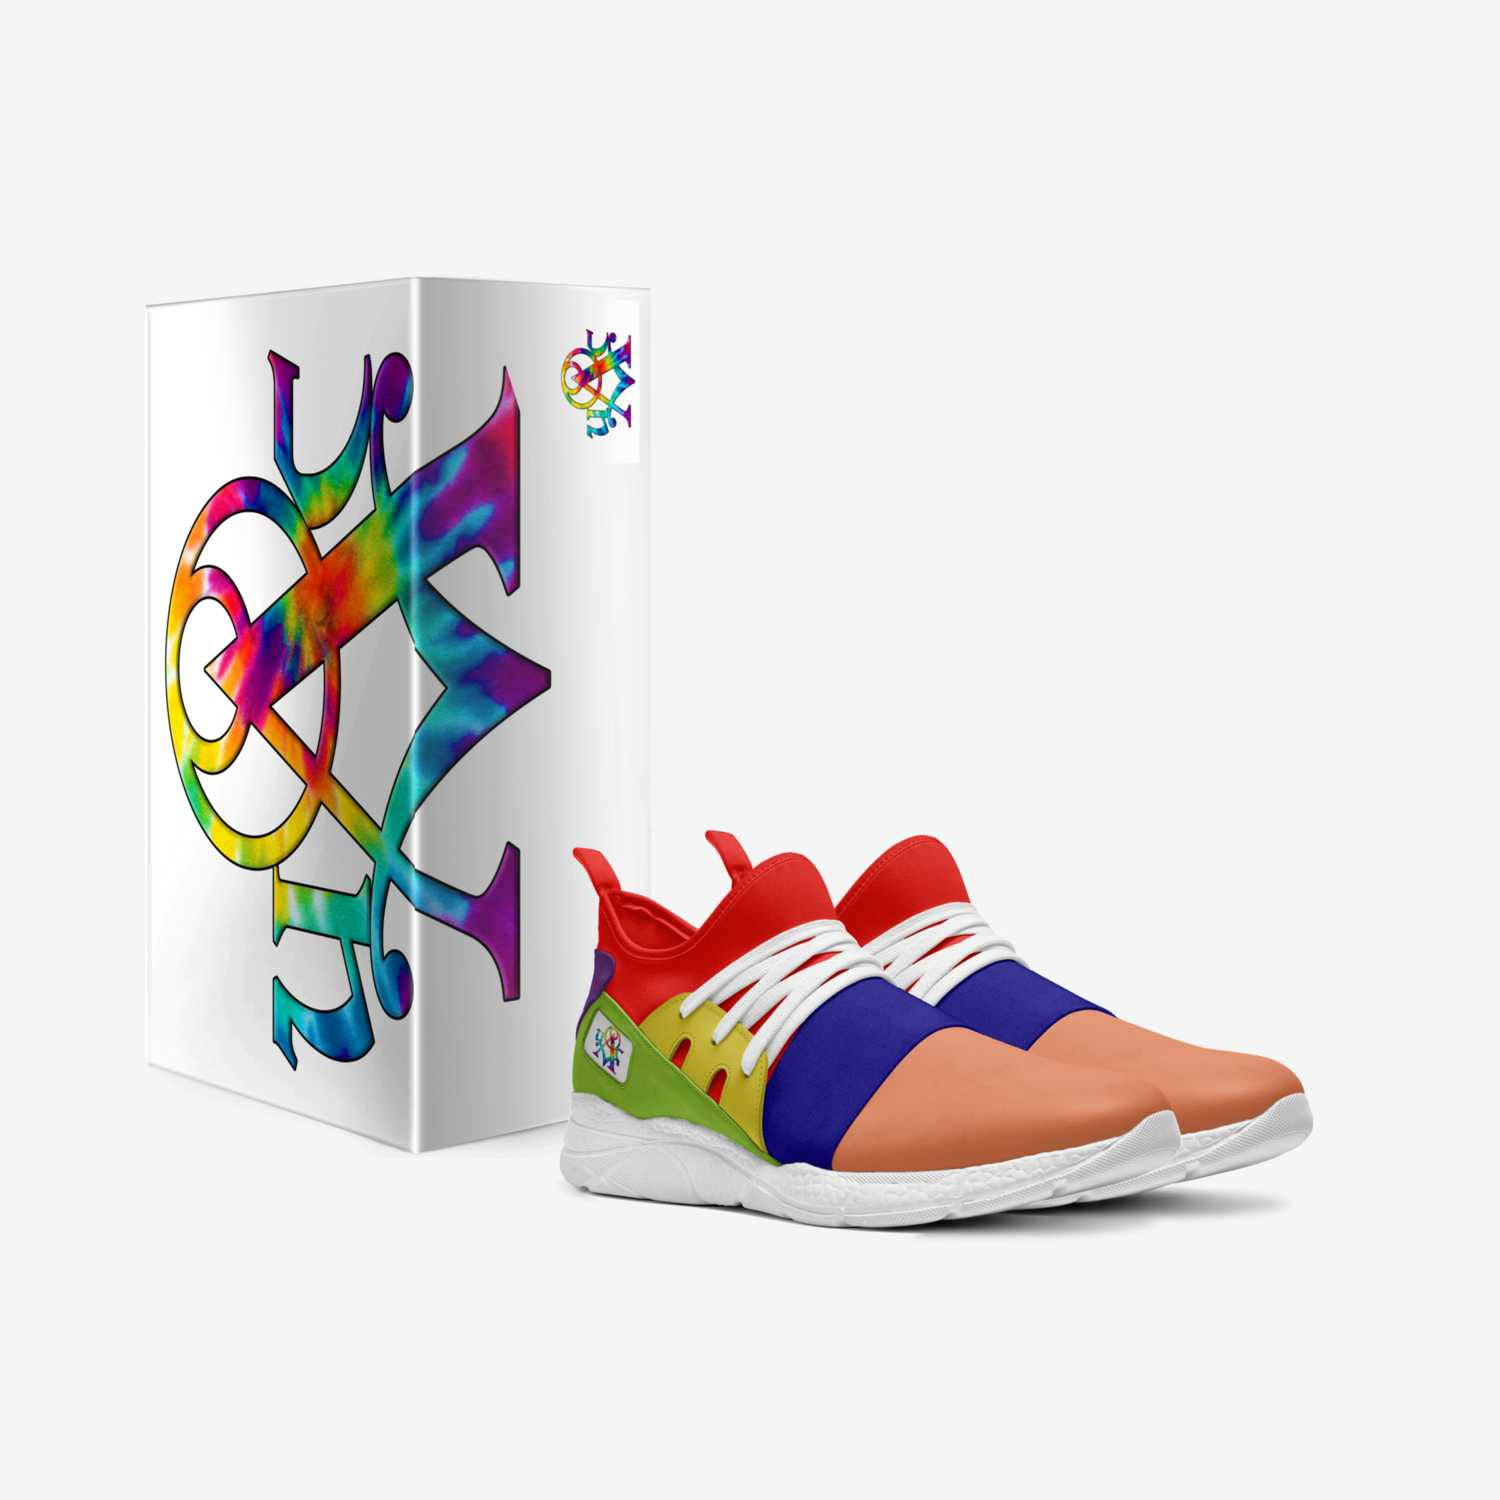 Alchemist Skittles custom made in Italy shoes by Urban Alchemist Clothing   Box view